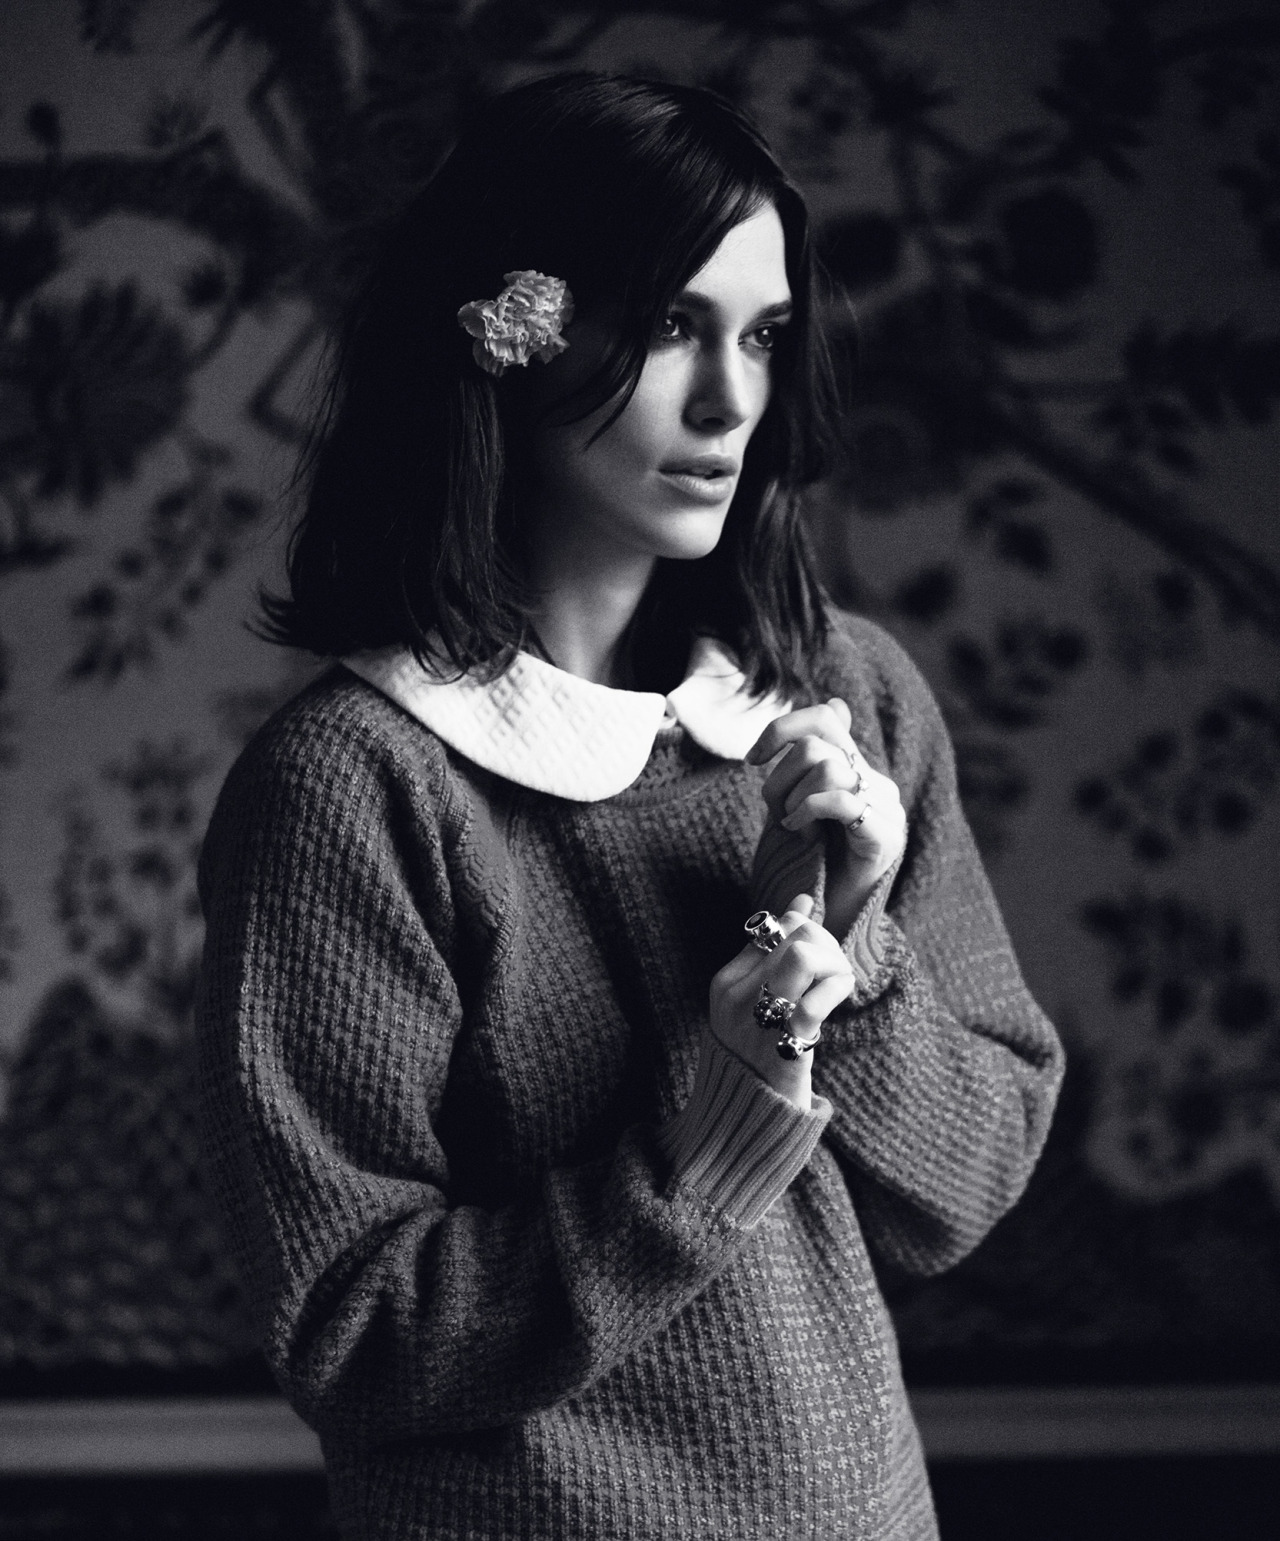 Keira Knightley by Emily Hope for Rika #8 Spring-Summer 2013